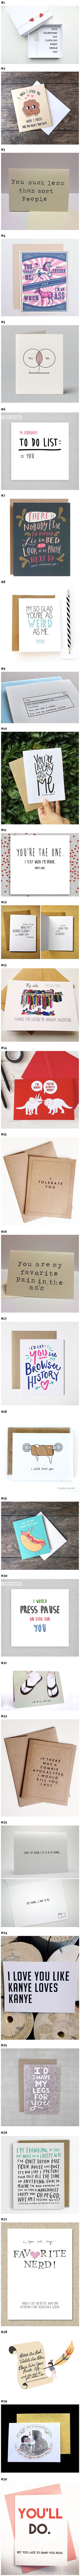 We have rounded up some funny Valentine cards that geeks would love.